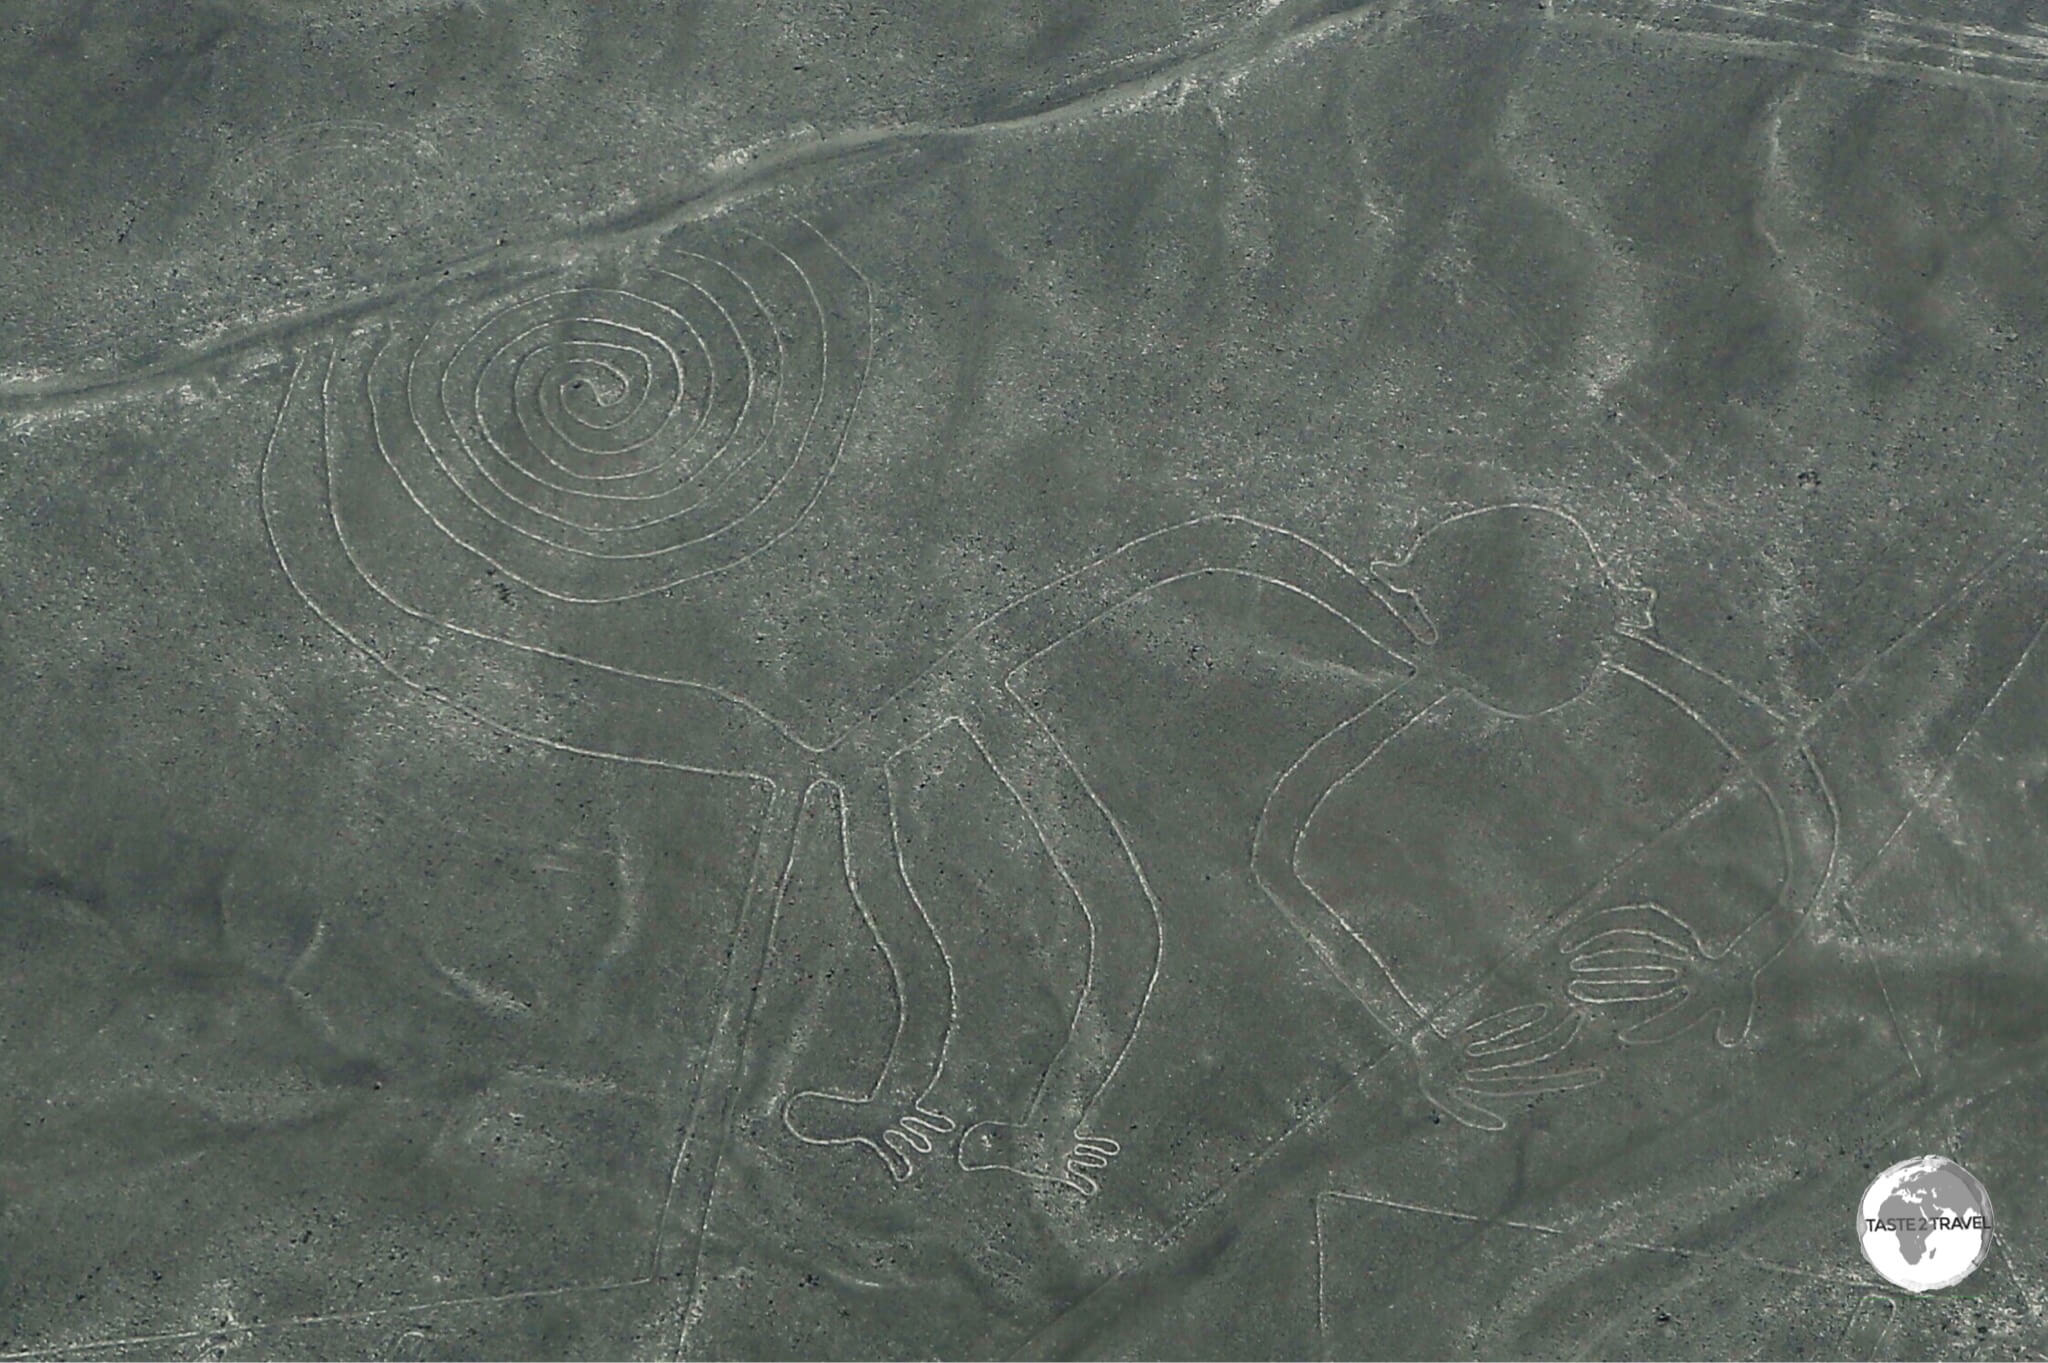 The Nazca Lines are a collection of giant geoglyphs in Peru.